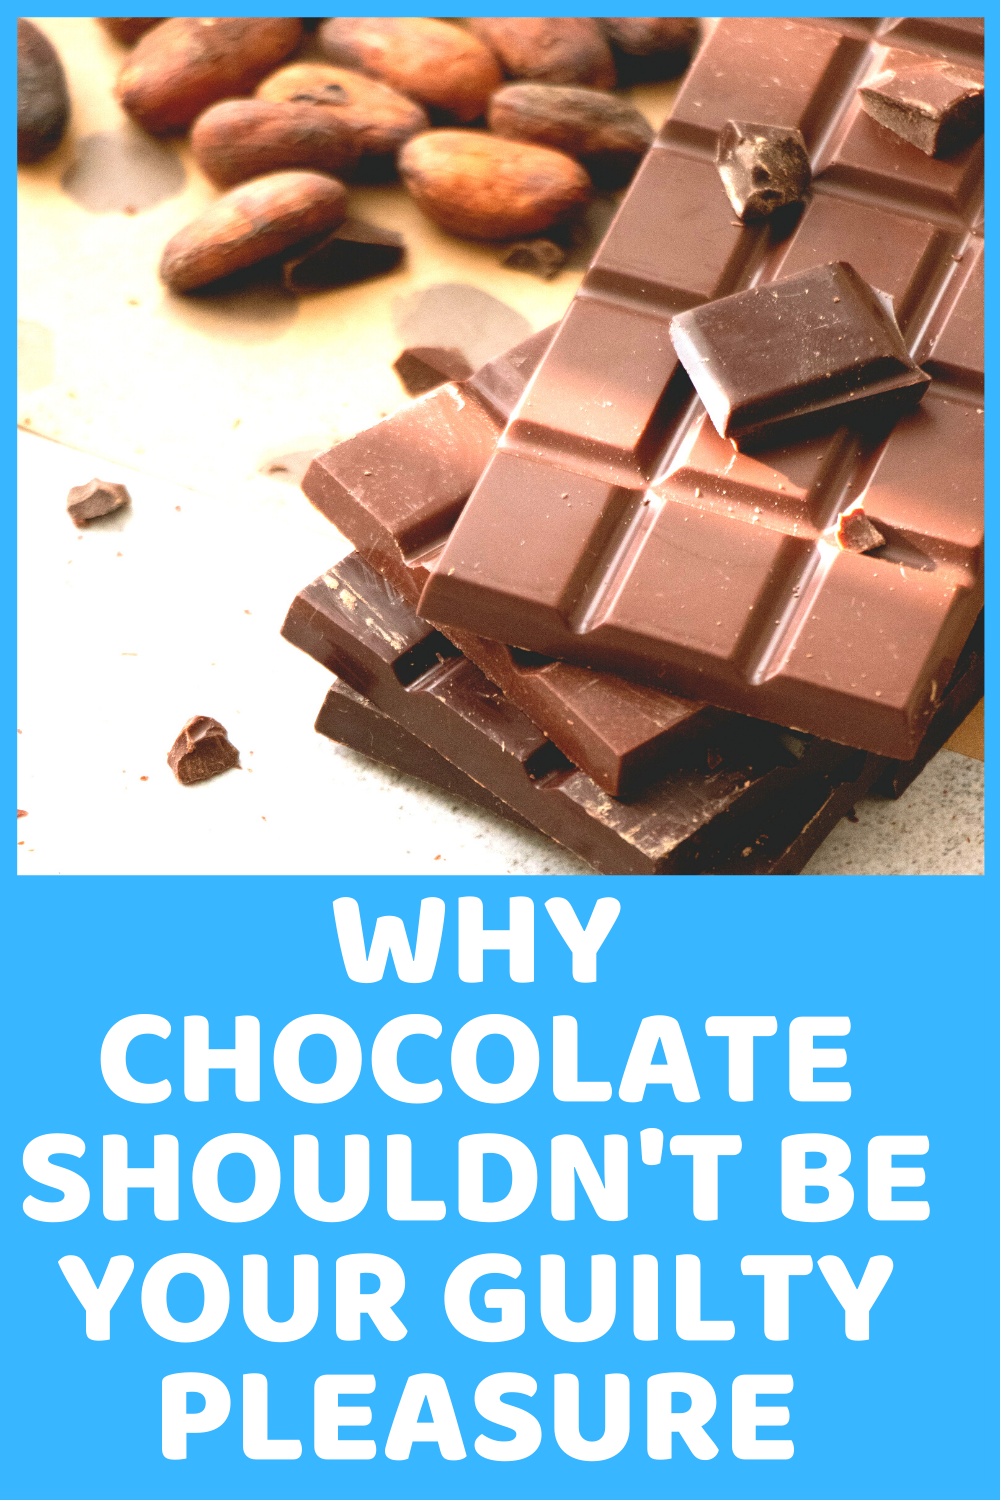 Why Chocolate Shouldn't Be Your Guilty Pleasure - wellness wednesday